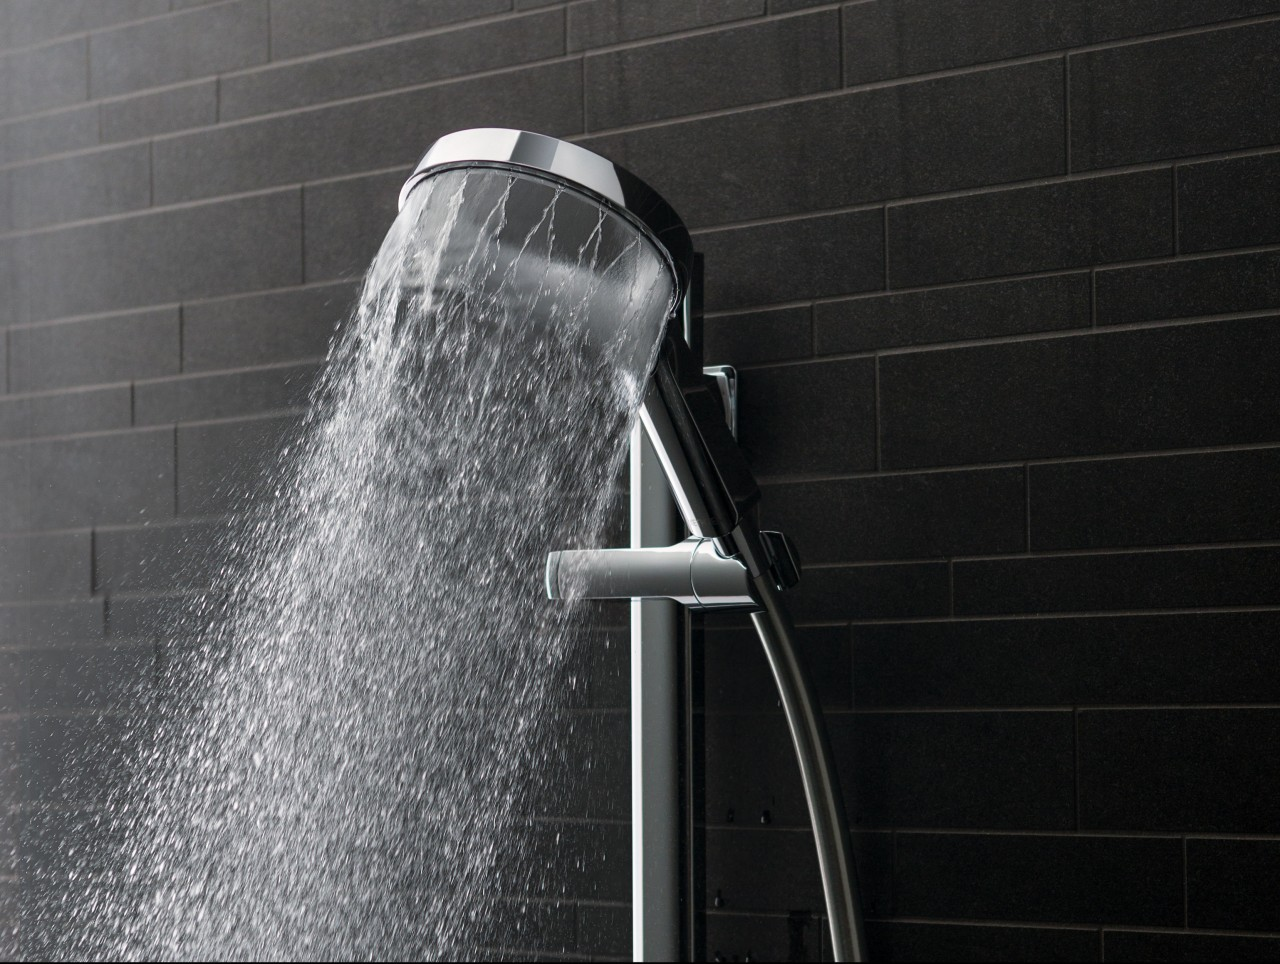 The new Aurajet showerhead offers improved spray coverage black, black and white, monochrome, monochrome photography, plumbing fixture, water, black, gray